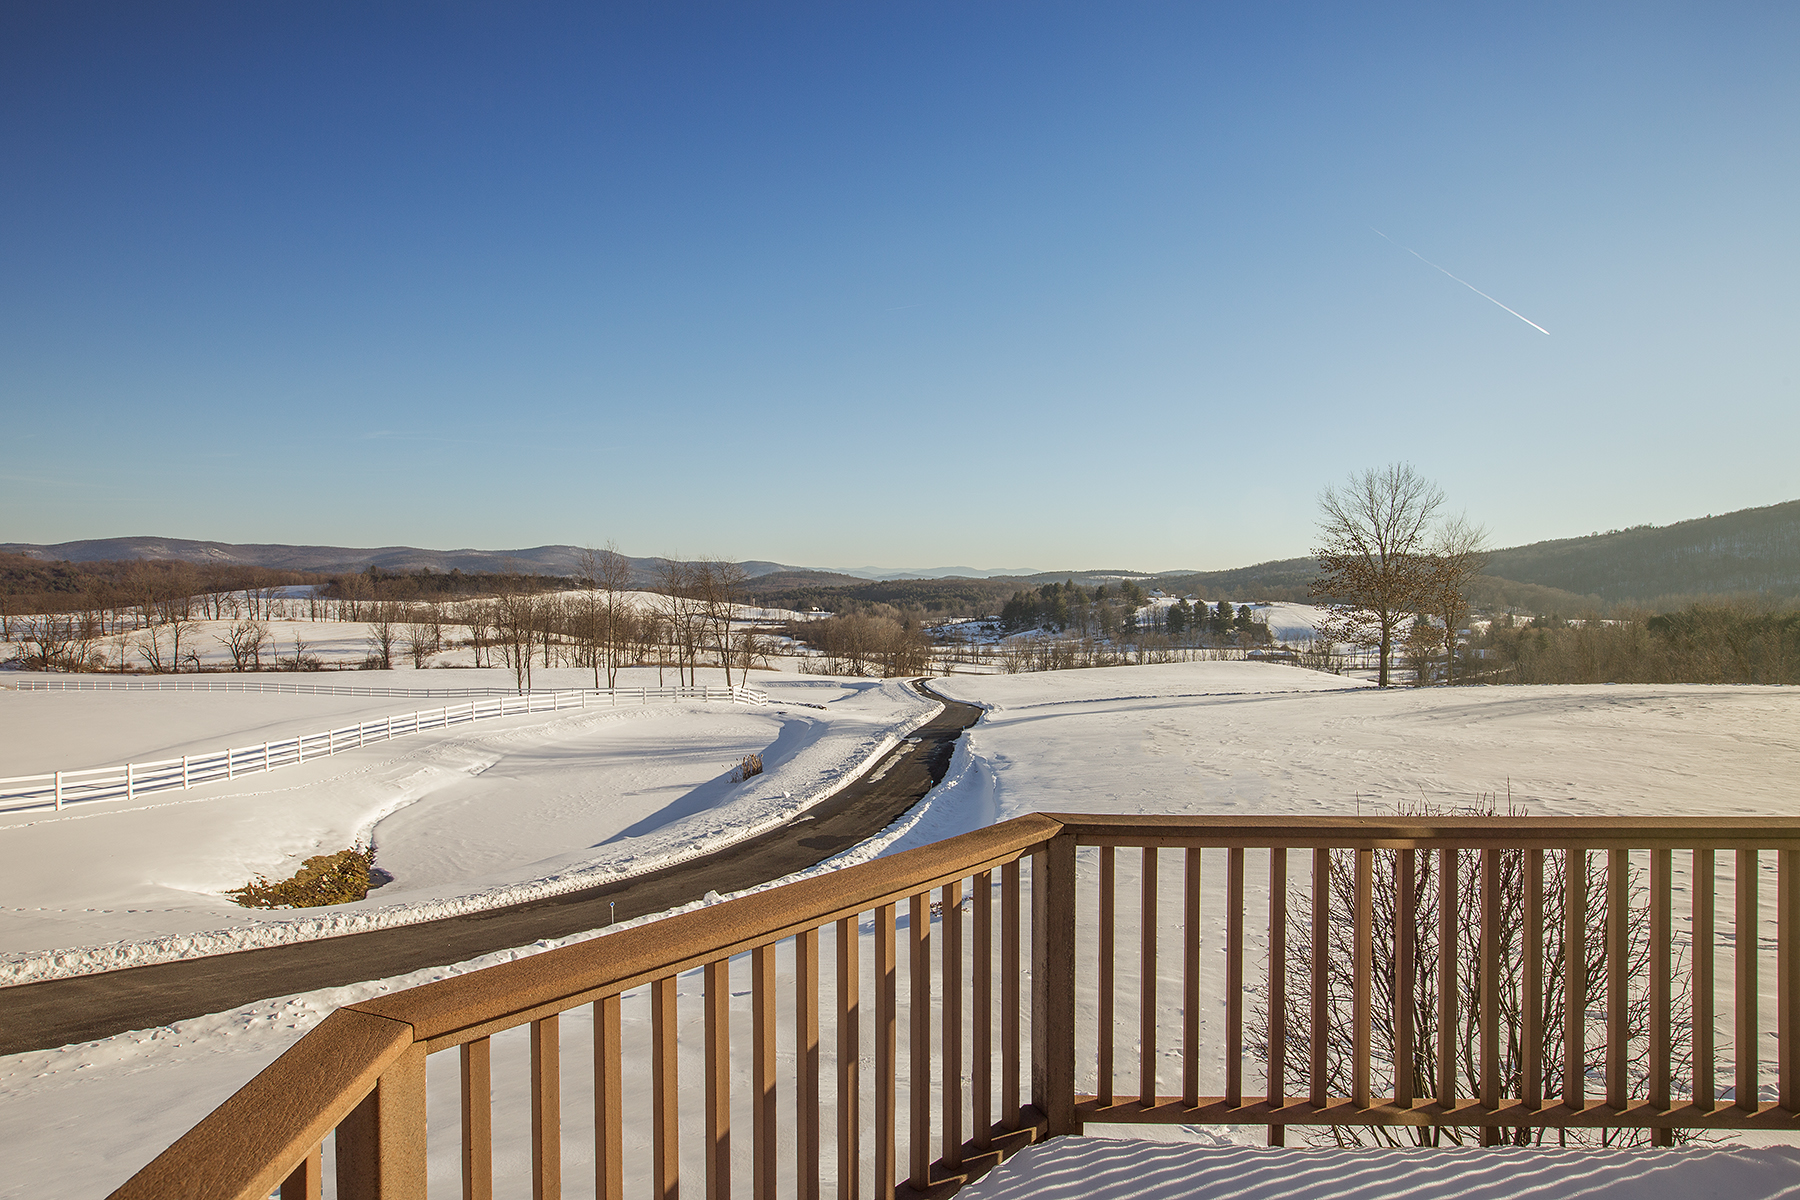 sunrise mountain ranch winter view ESI.jpg